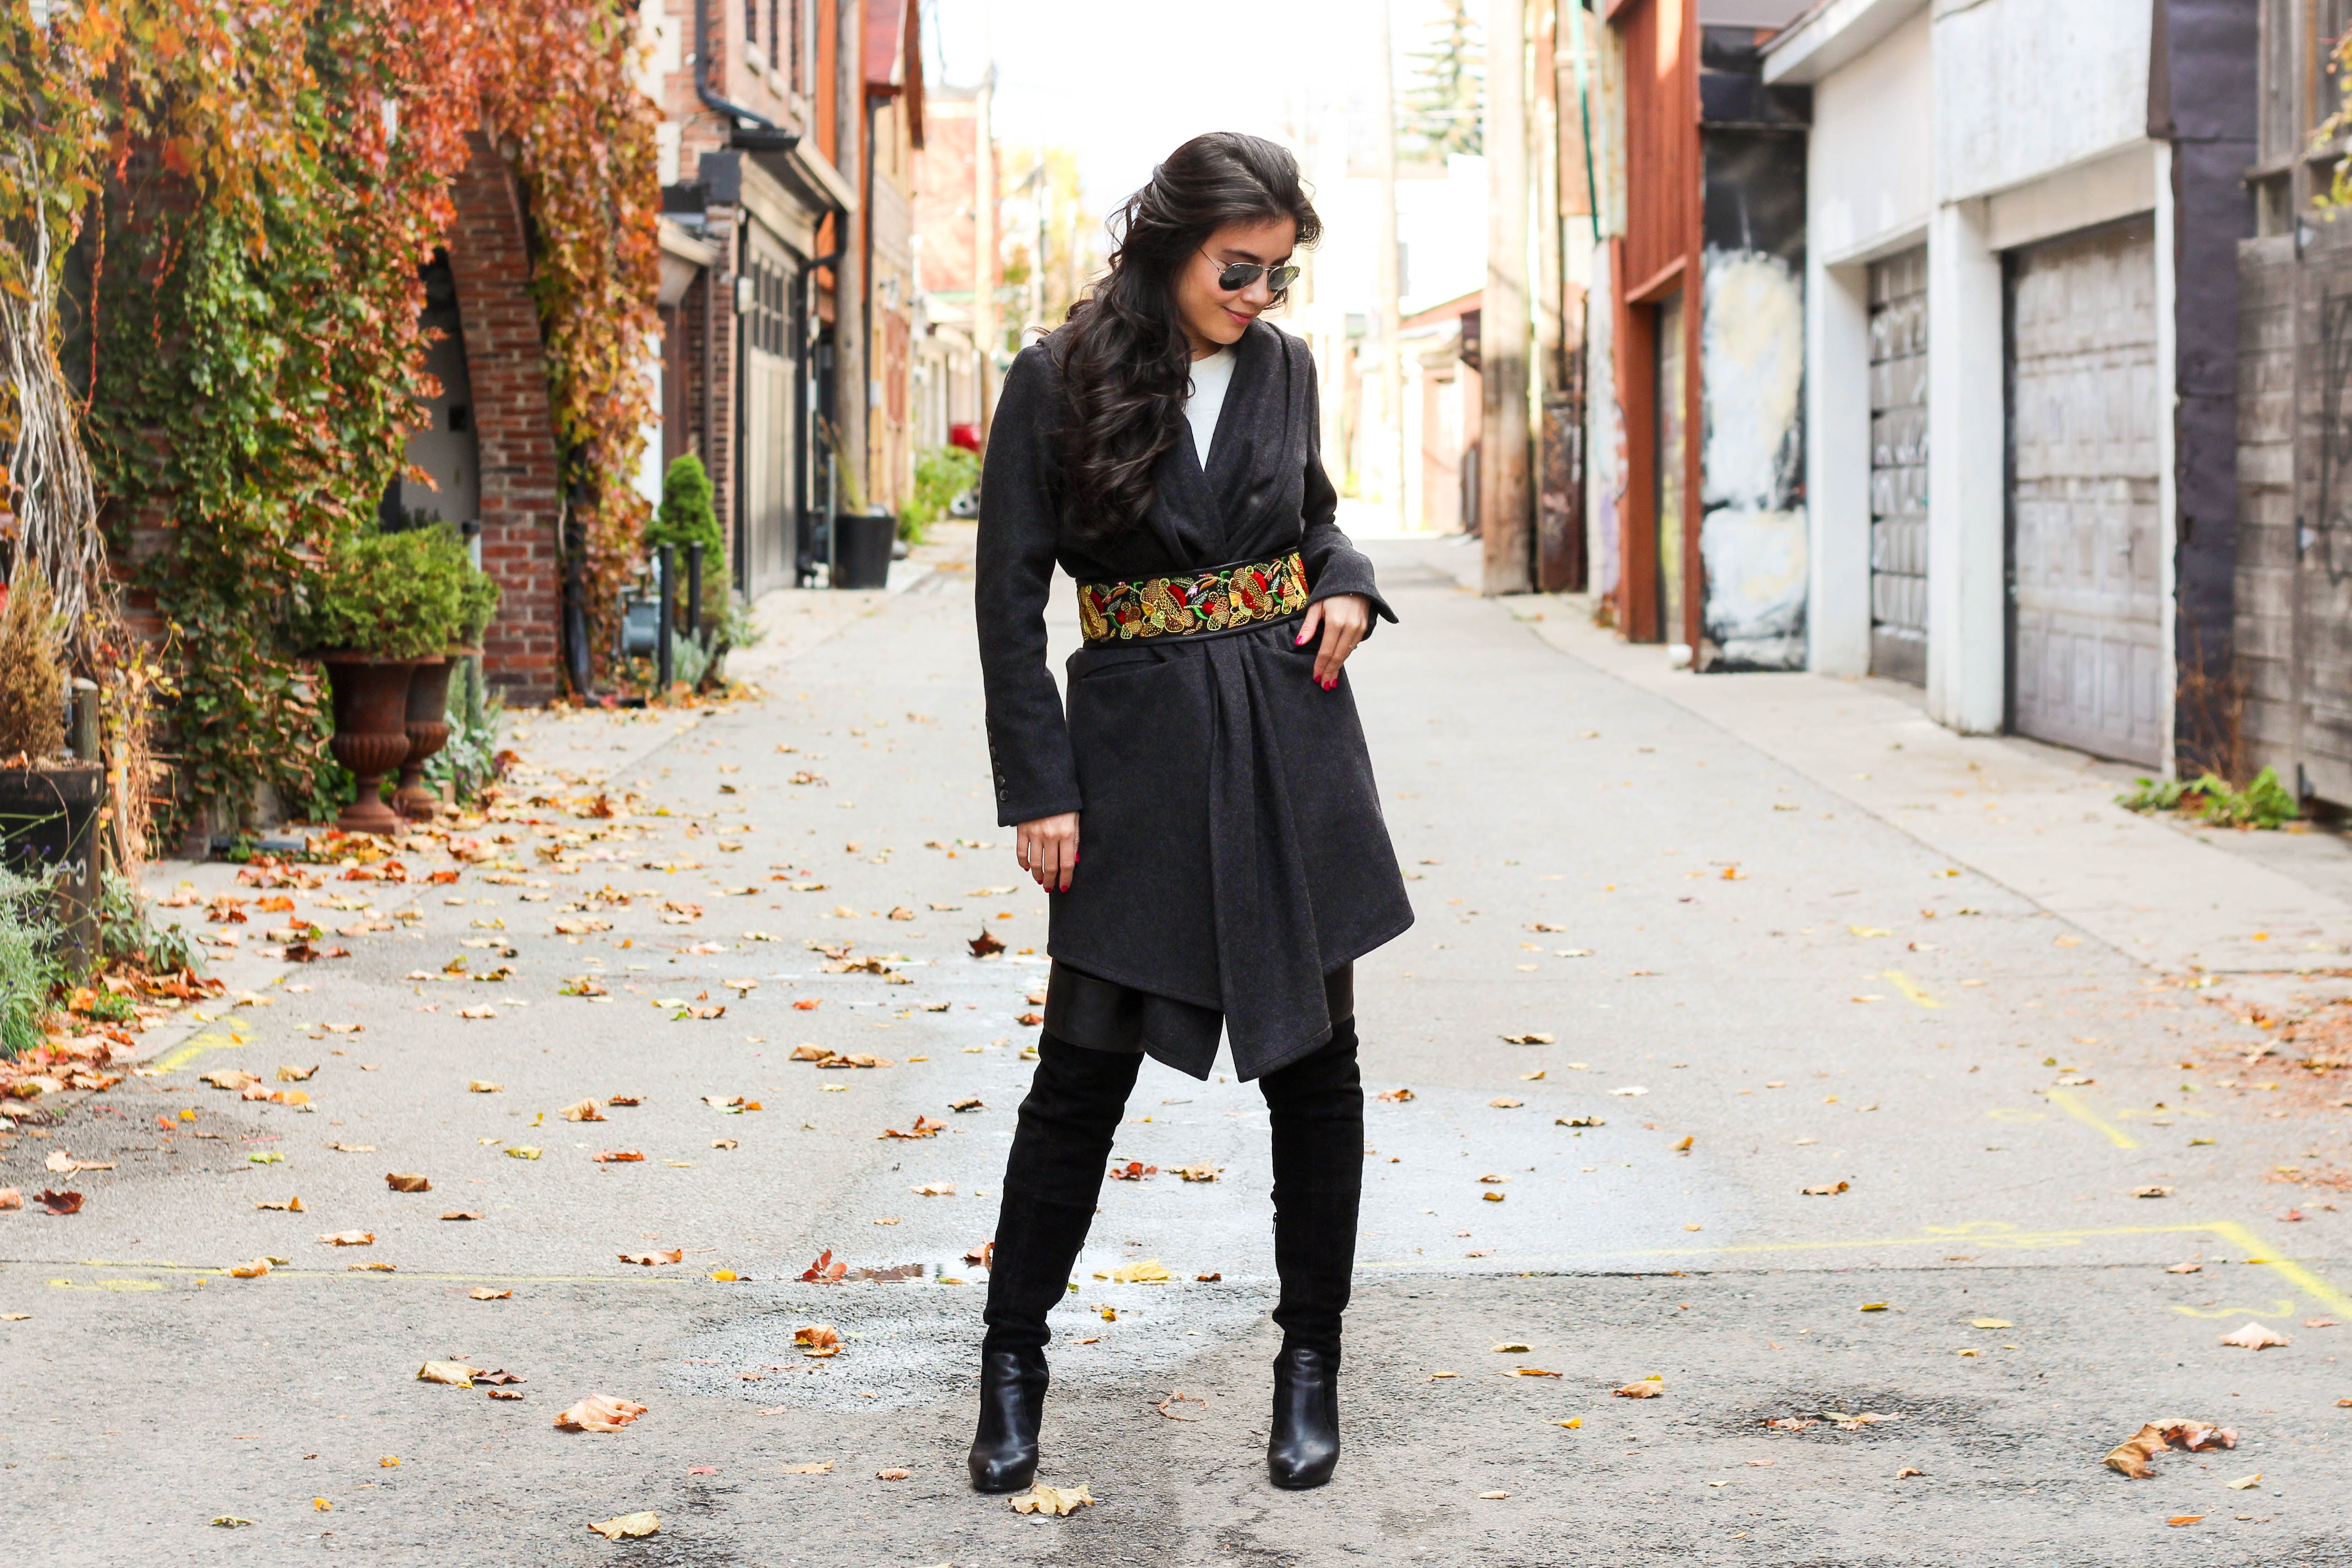 Belted - #Outfit post from Toronto Blogger Jocelyn Caithness